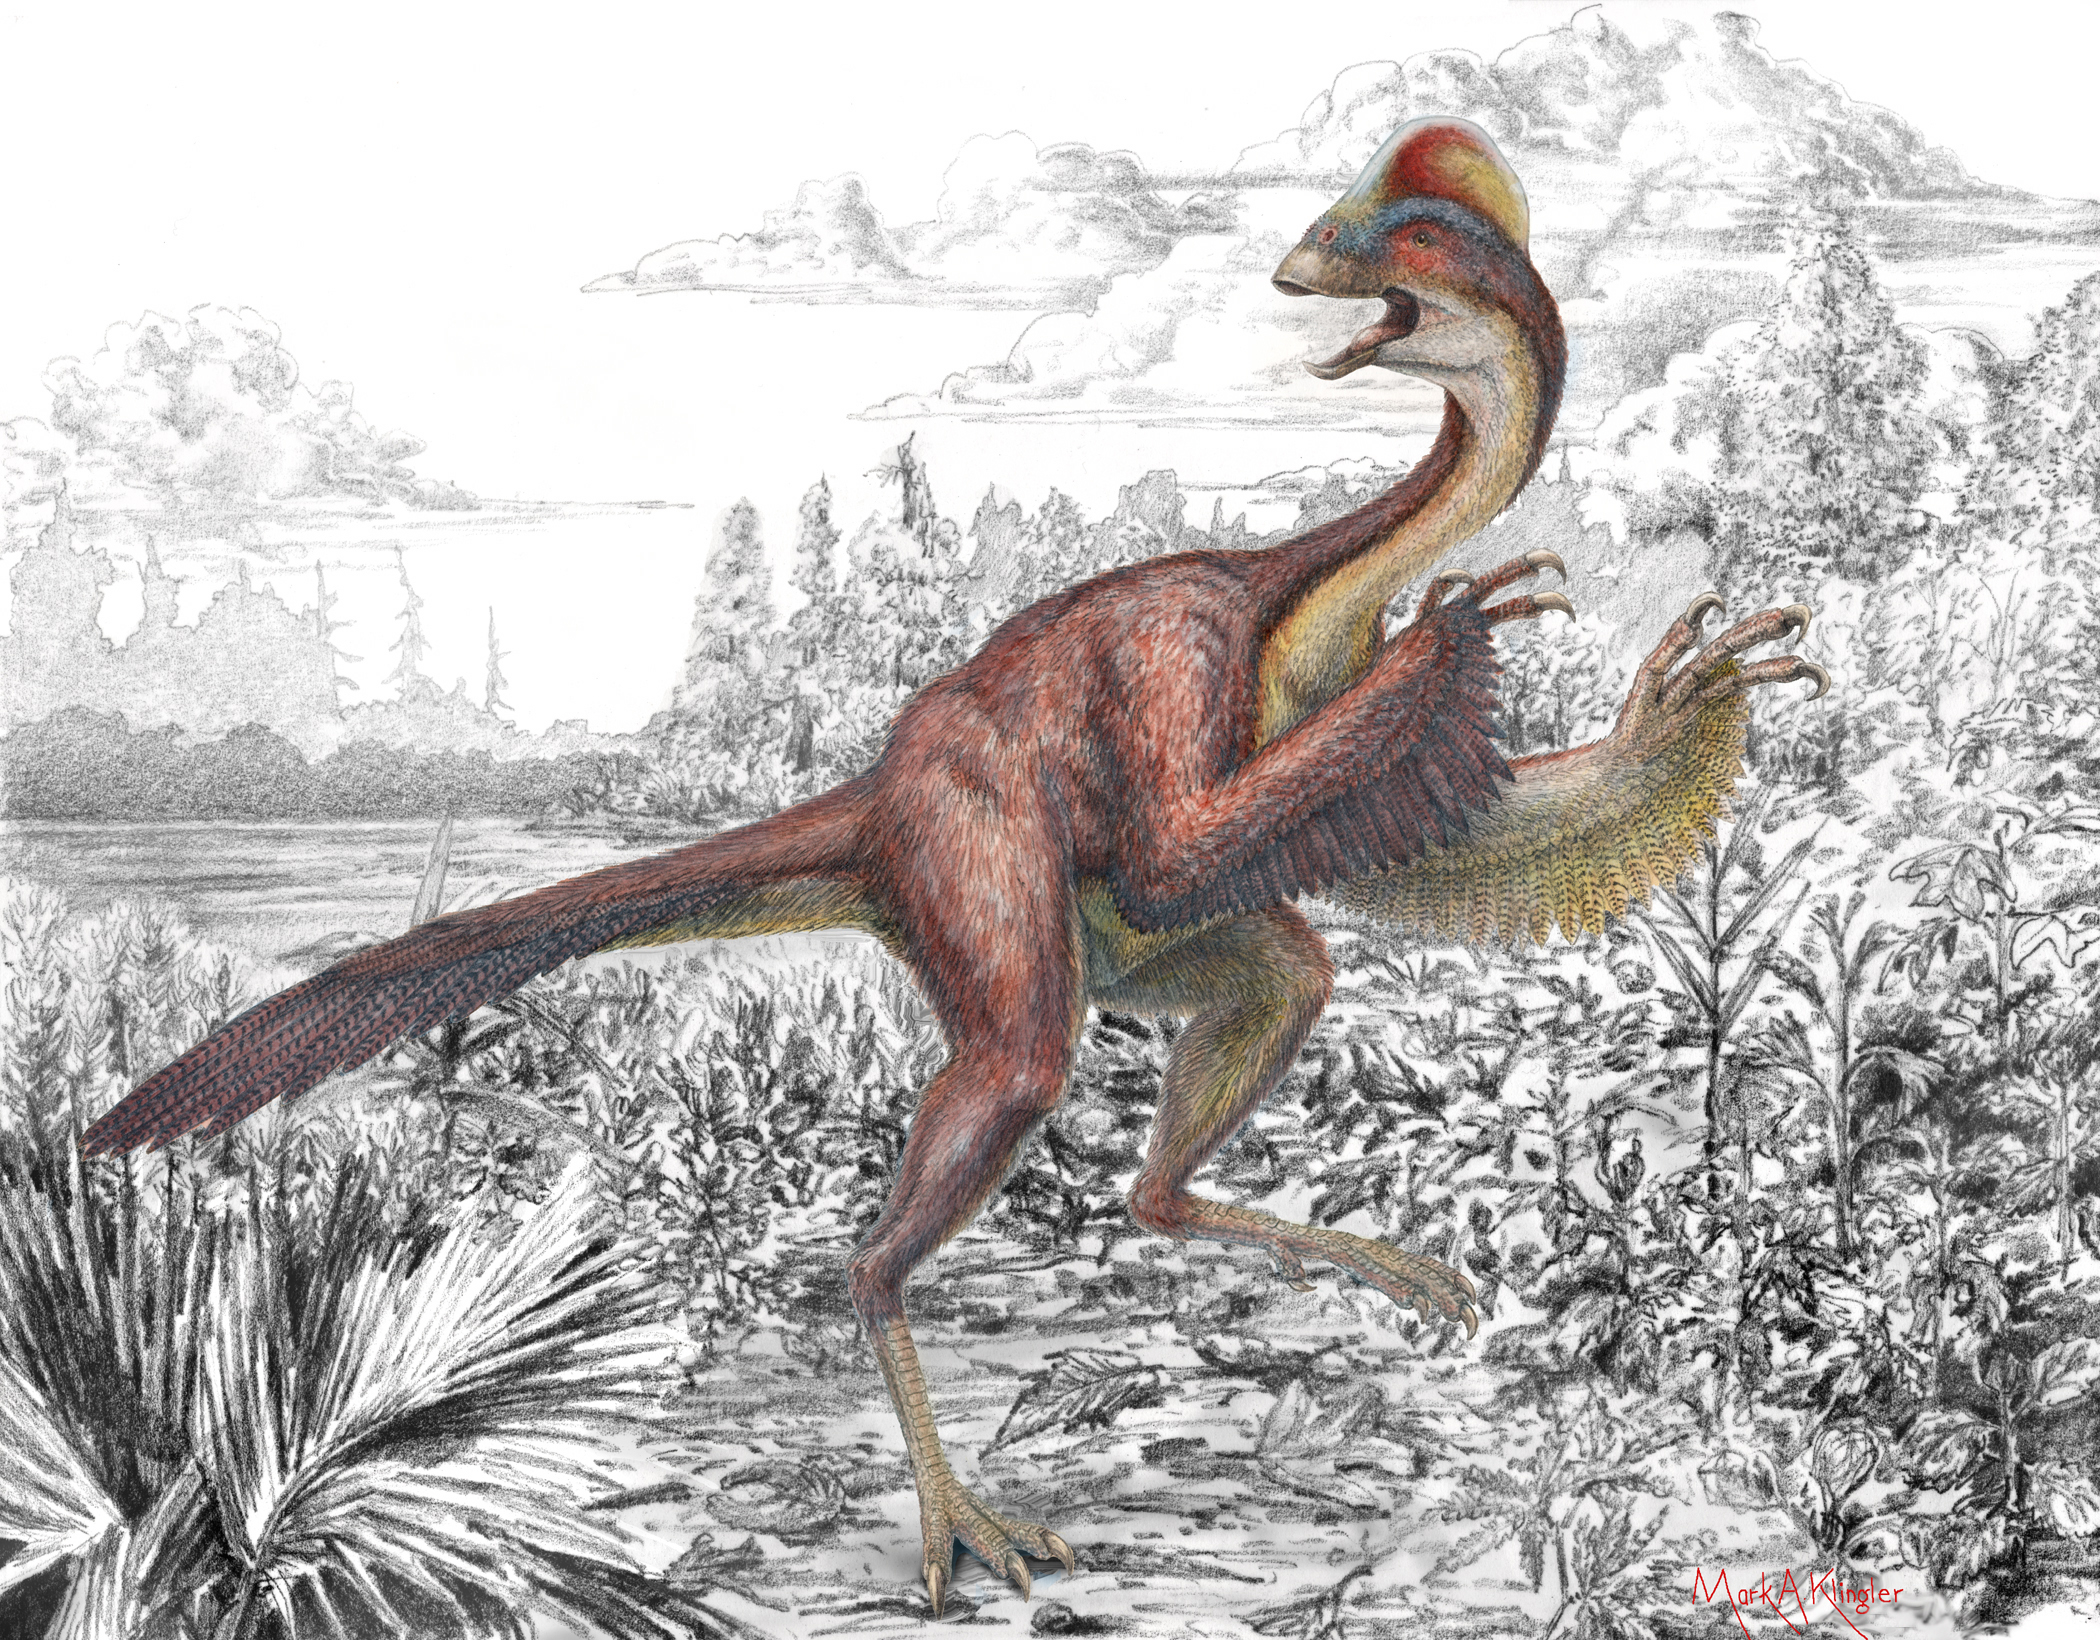 Anzu wyliei, shown here in an artist's illustration, was a feathered dinosaur about 11 feet in length and 5 feet high at its hip. It lived in a humid floodplain environment. Image byMark Klingler, Carnegie Museum of Natural History.